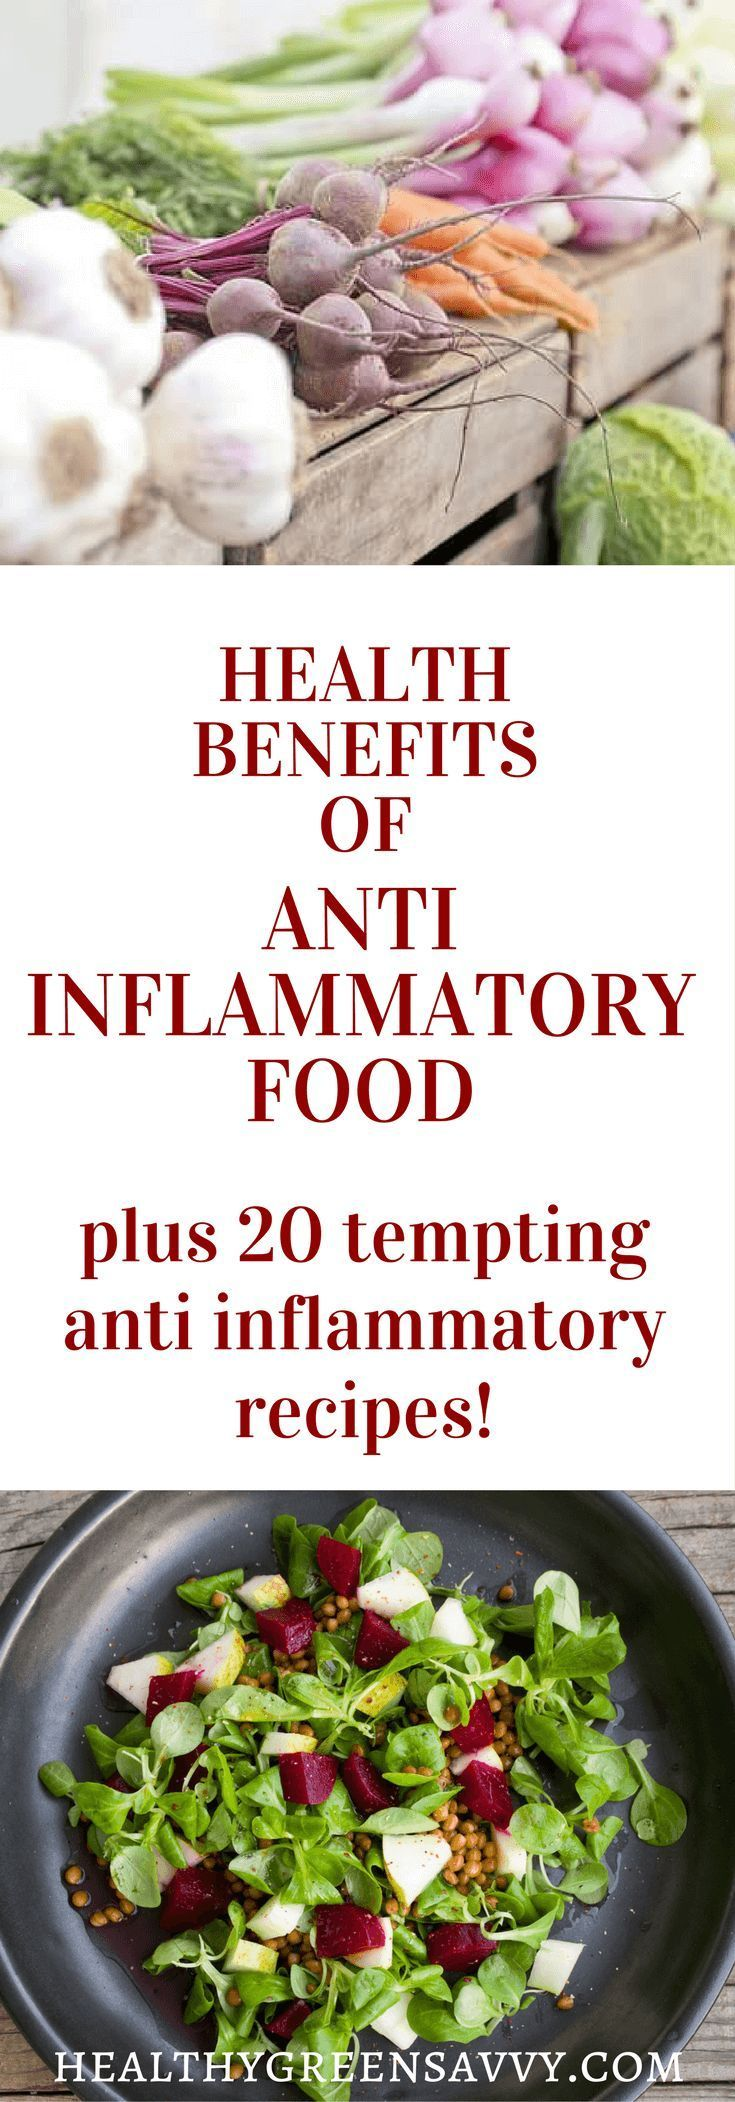 Anti-Inflammatory Food ~ Your Best Defense Against DiseaseHealthyGreenSavvy | Practical Tips for Healthy Living